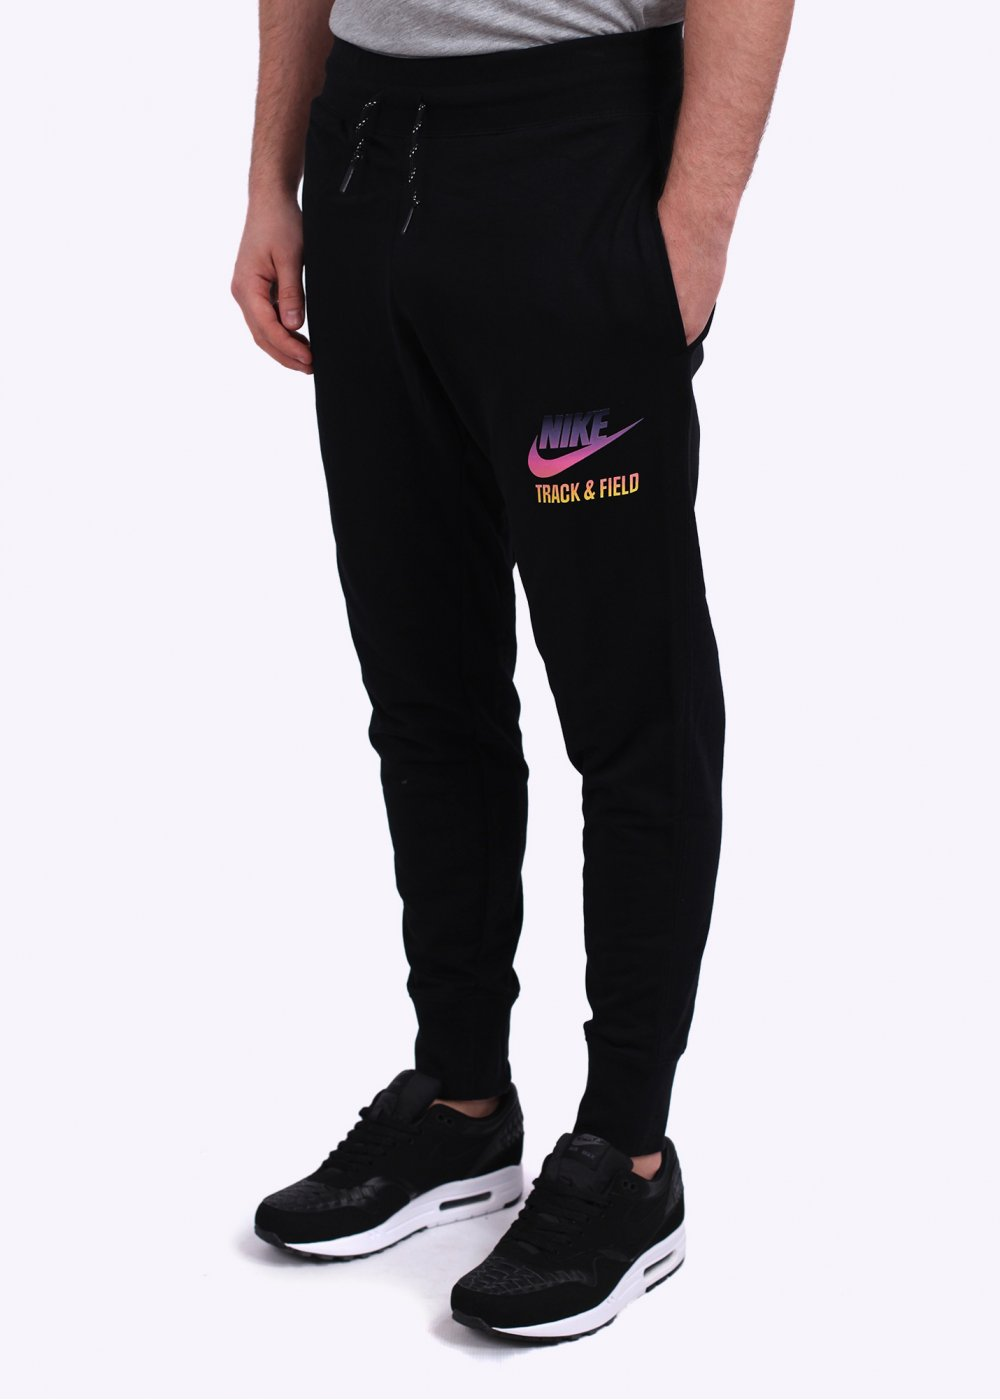 nike sportswear slim cuff pant black. Black Bedroom Furniture Sets. Home Design Ideas